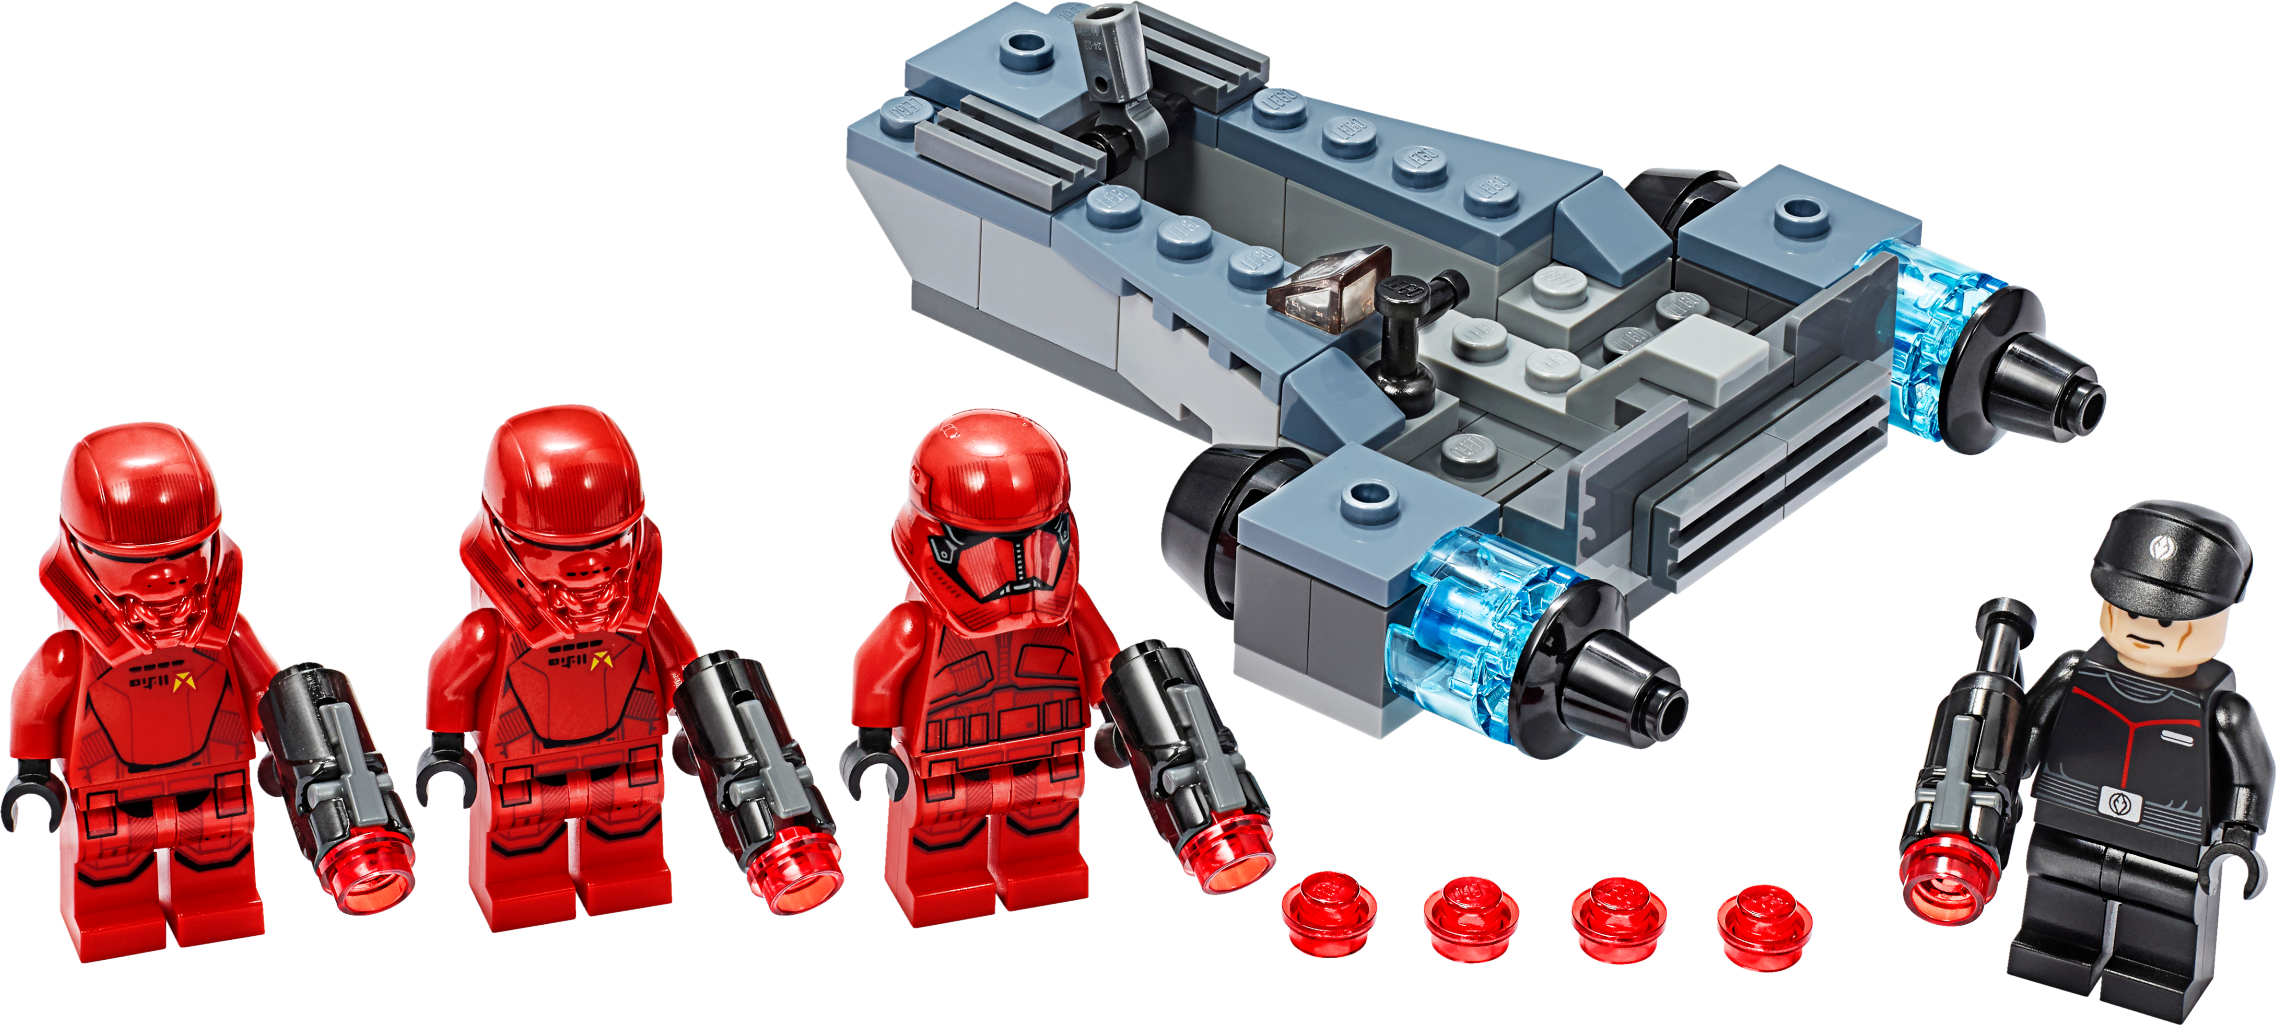 """Sith Troopers"""" Battle Pack"""